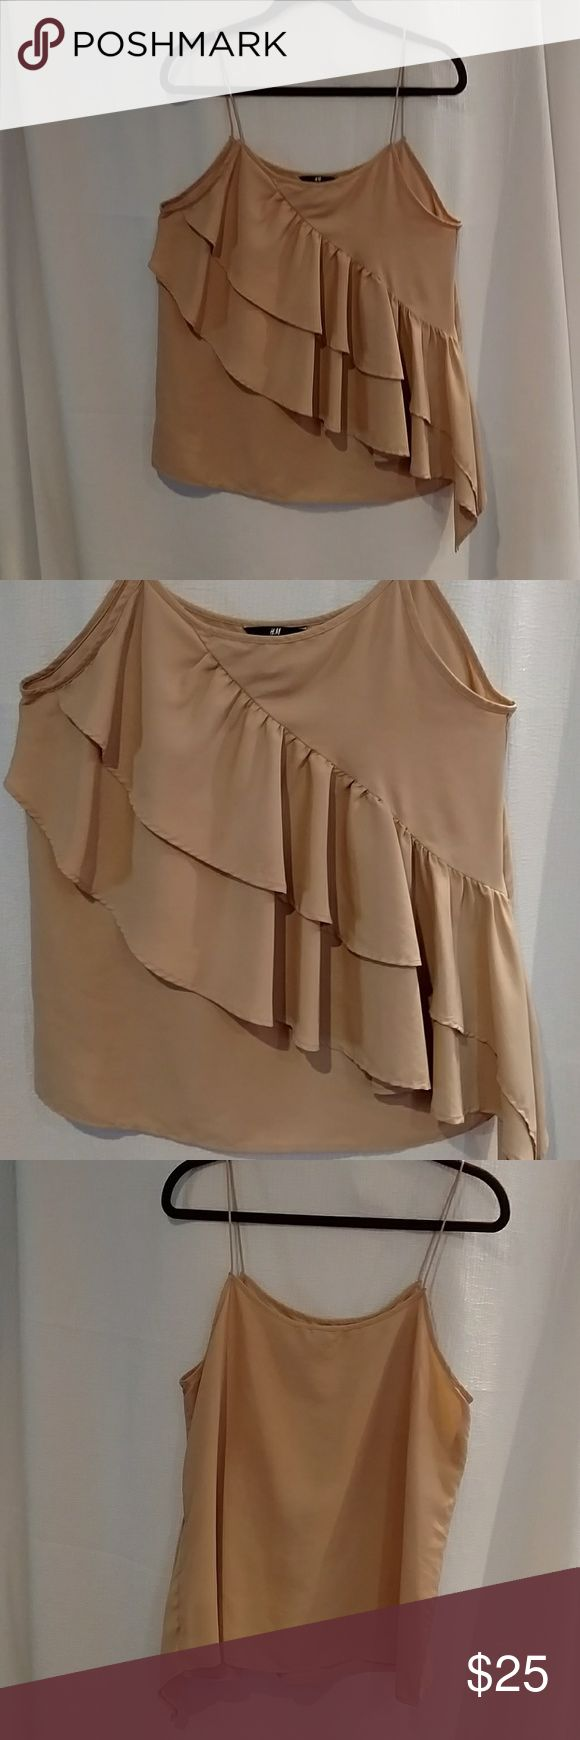 NWOT H&M Front Ruffle Cami Style Top Size 14 Lovely soft beige cami top, smooth back and cascading ruffles on the front. Perfect for year around. In the cooler weather pair it with a jacket or more casual with a cardigan. Great staple in your wardrobe! H & M Tops